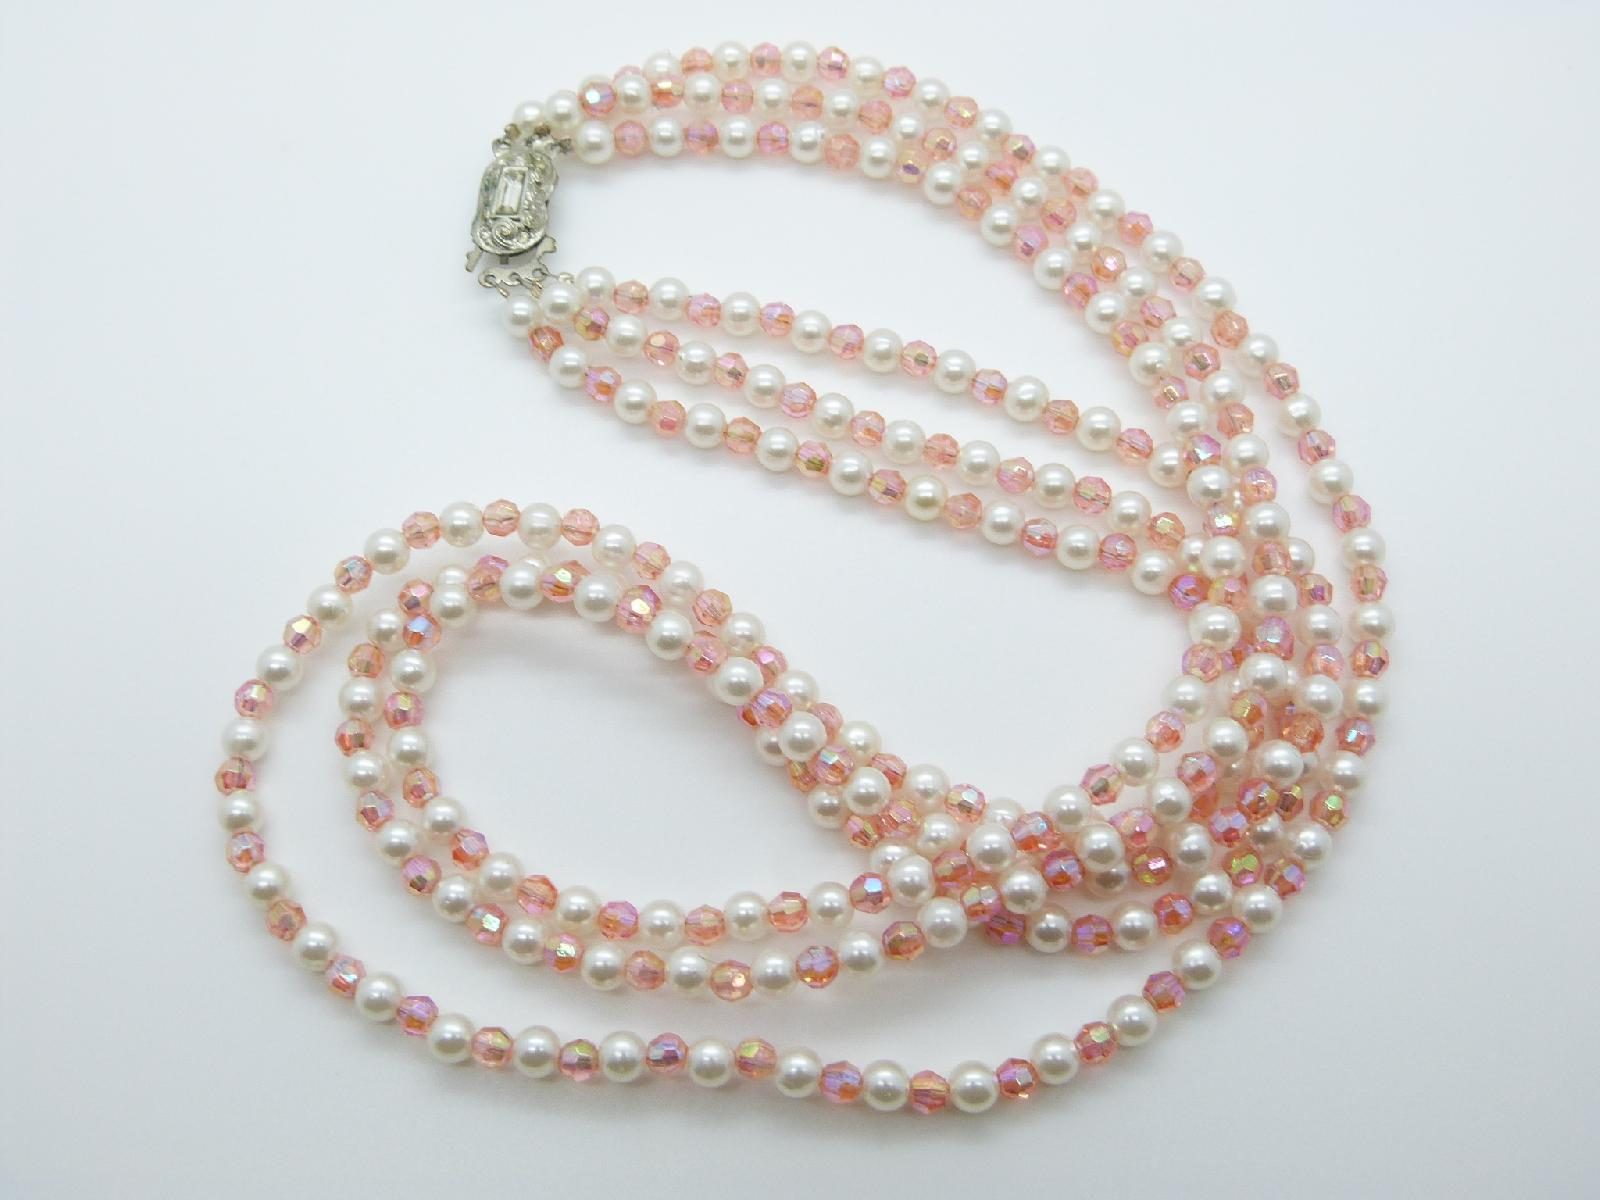 £8.00 - Vintage 50s Three Row Lucite Pink Bead and Plastic Pearl Necklace 66cms